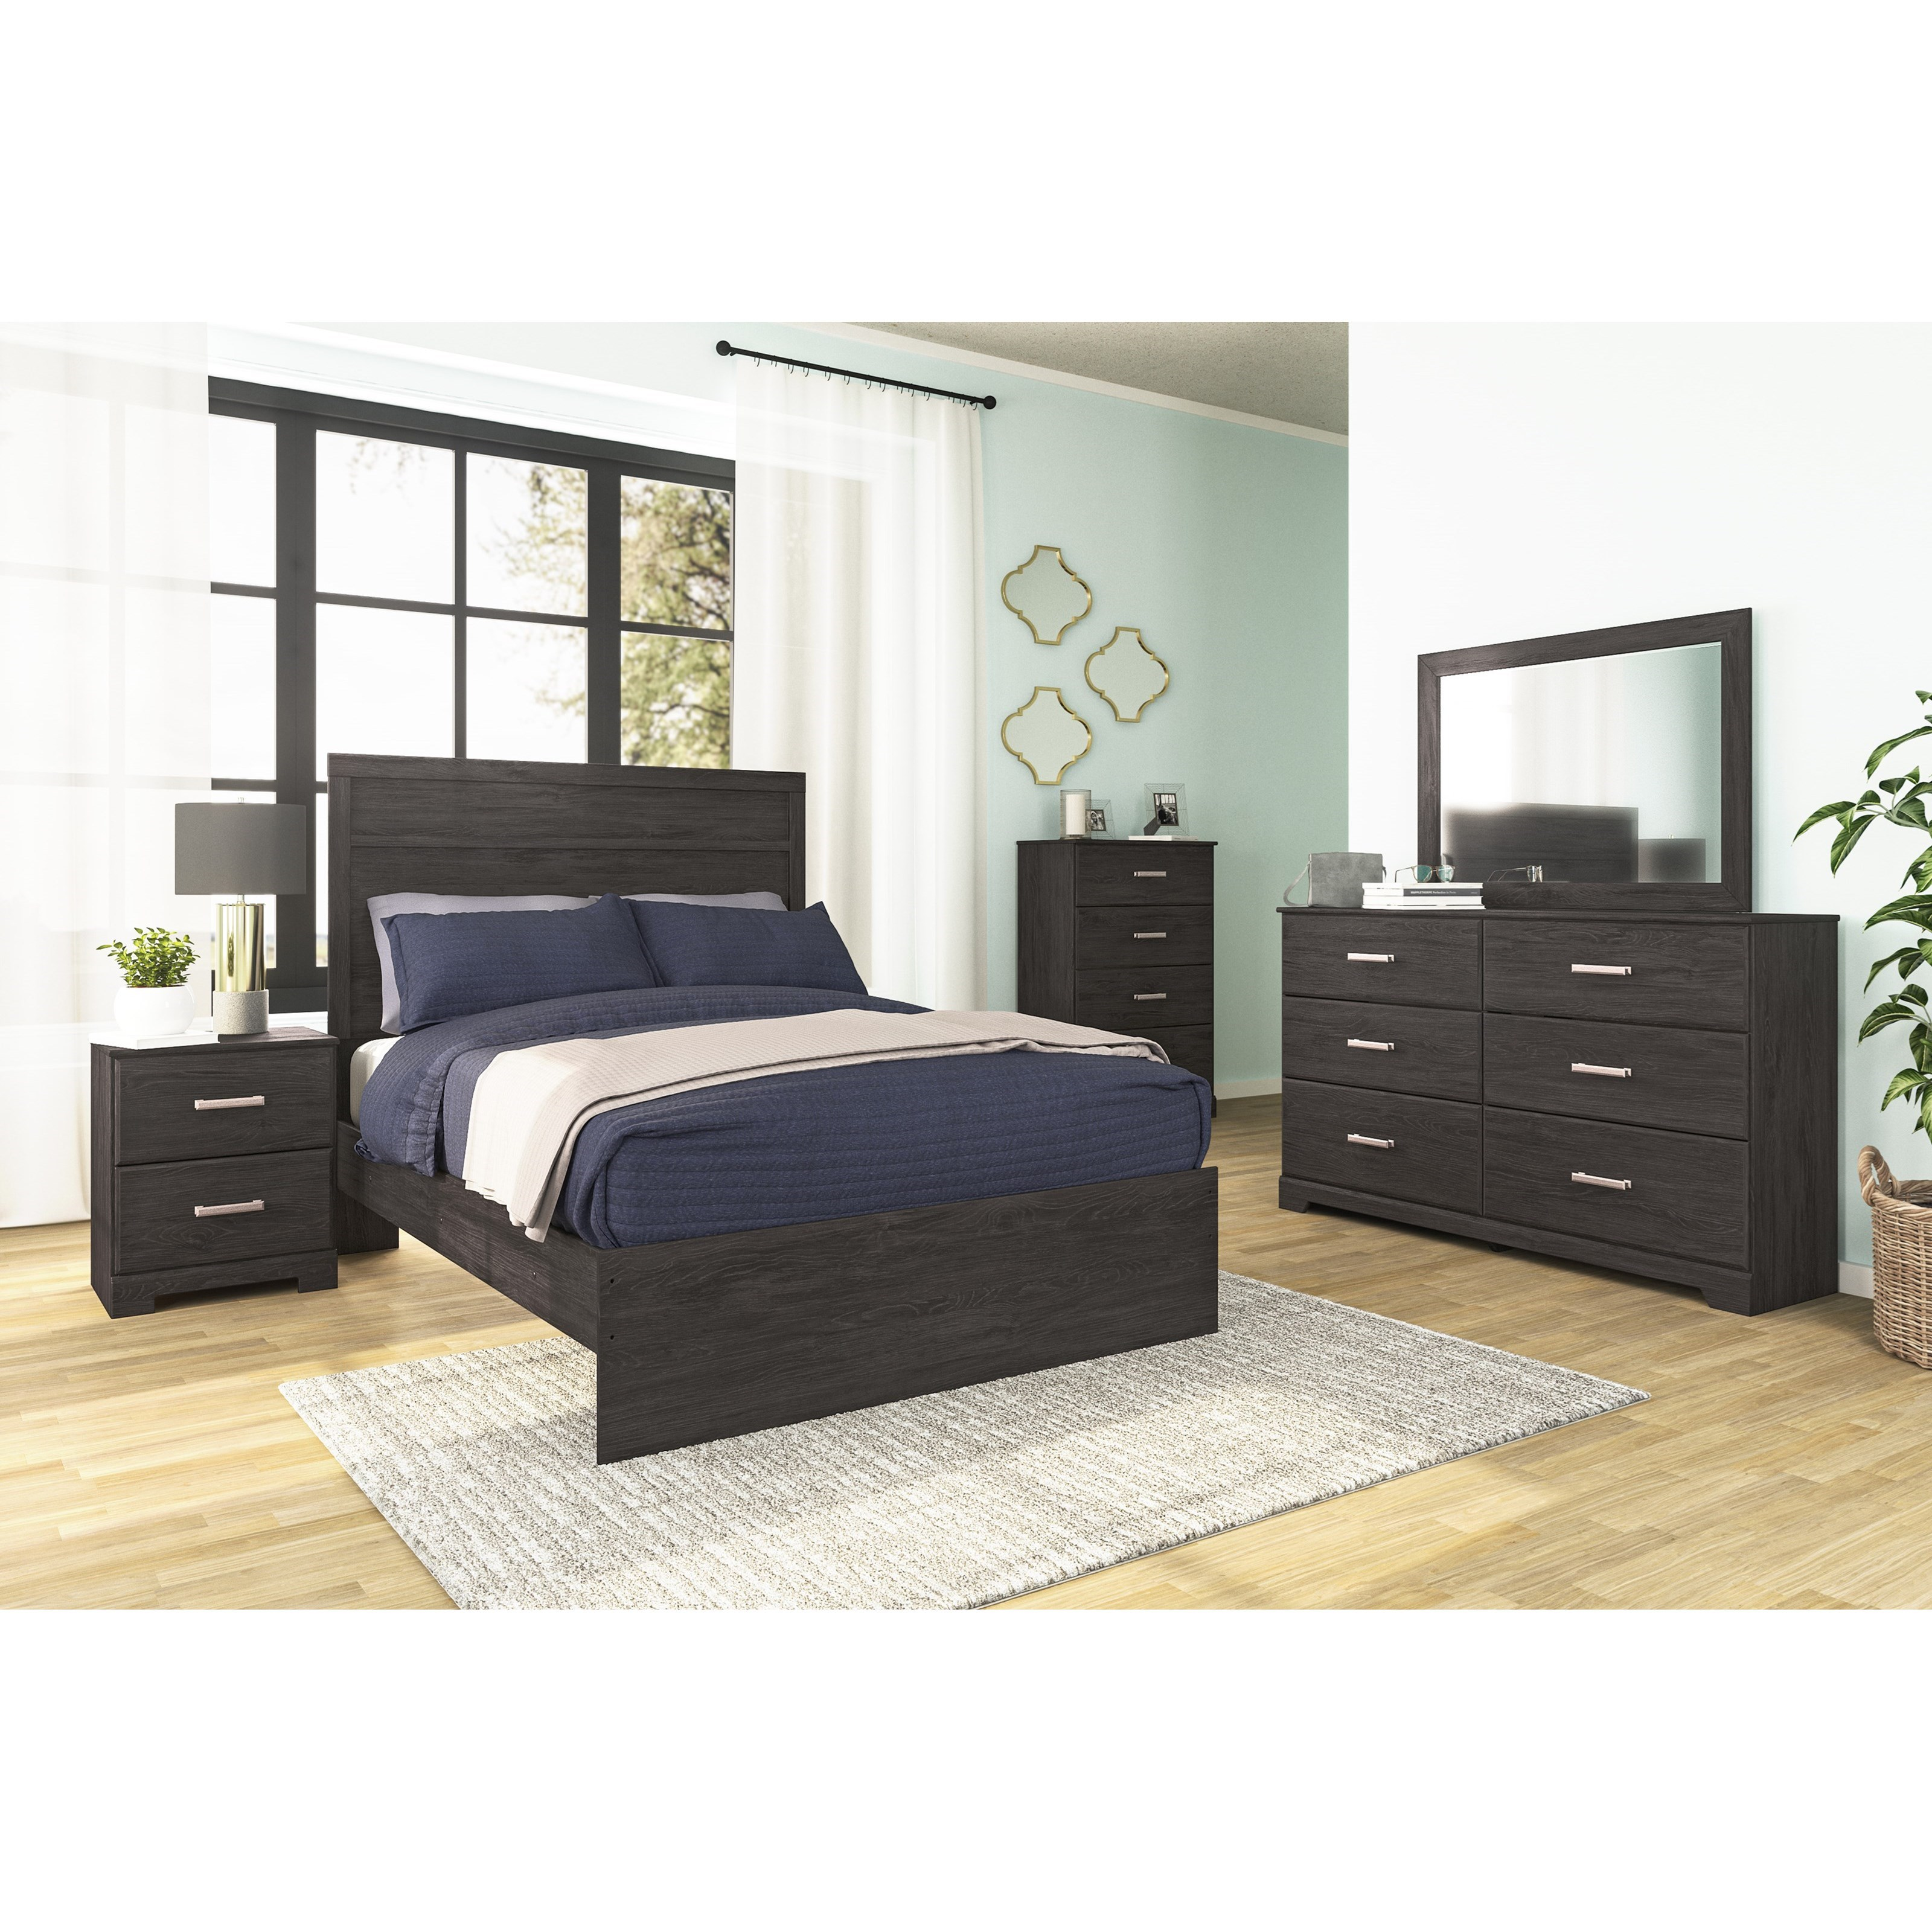 Belachime Full Bedroom Group by Signature Design by Ashley at Standard Furniture